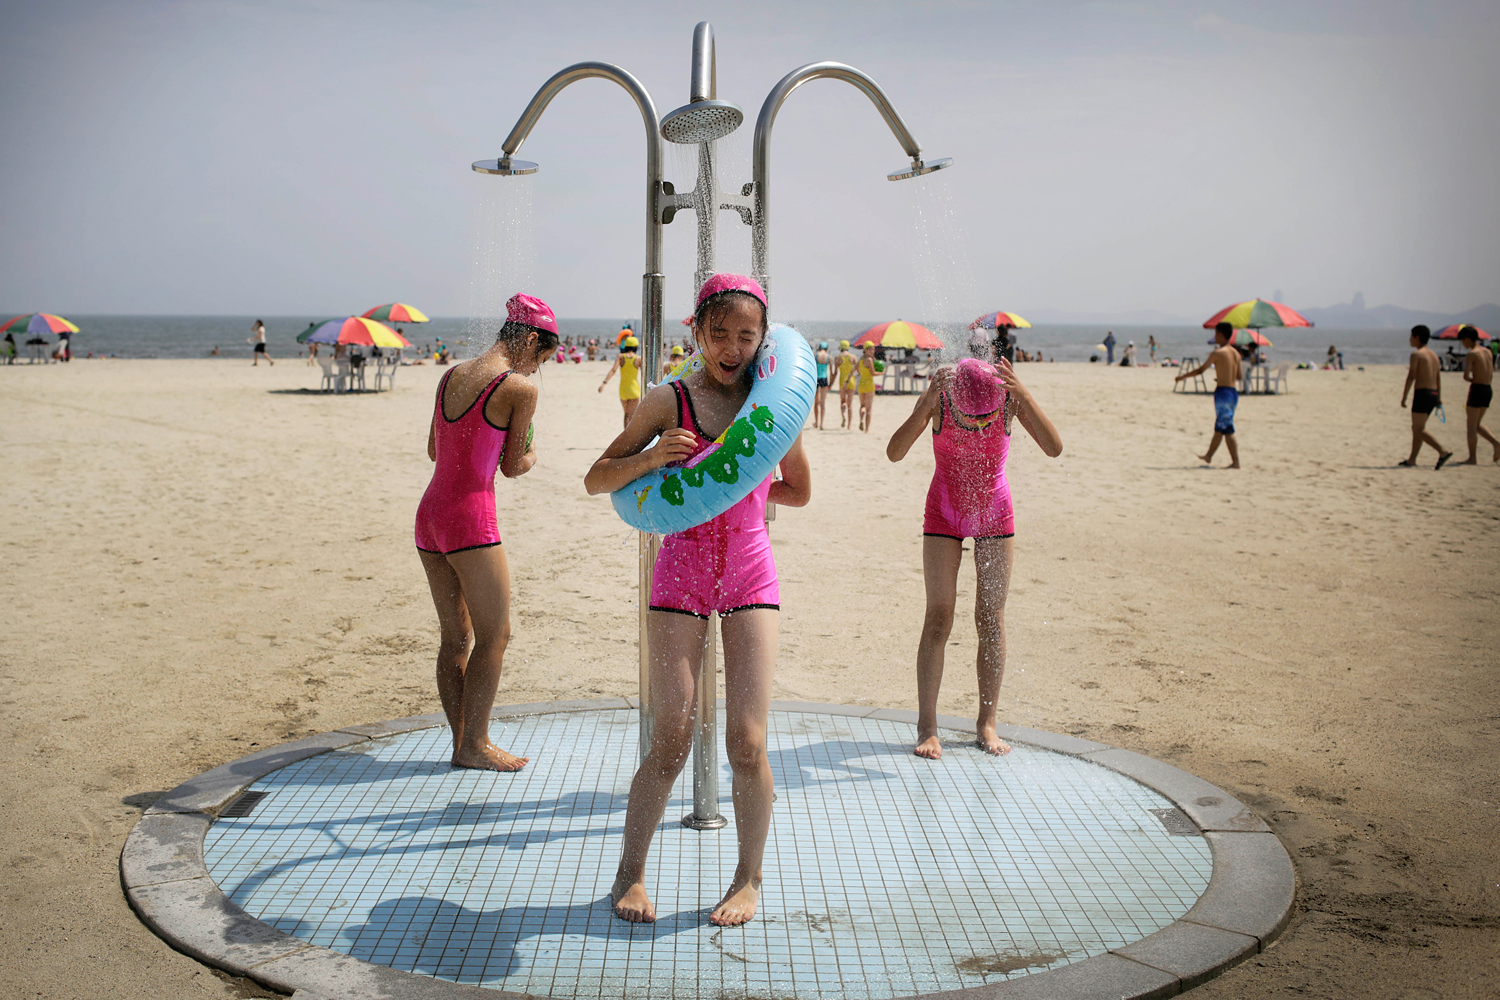 North Korean girls in similar bathing suits stand under a shower at the Songdowon International Children's Camp, Tuesday, July 29, 2014, in Wonsan, North Korea.